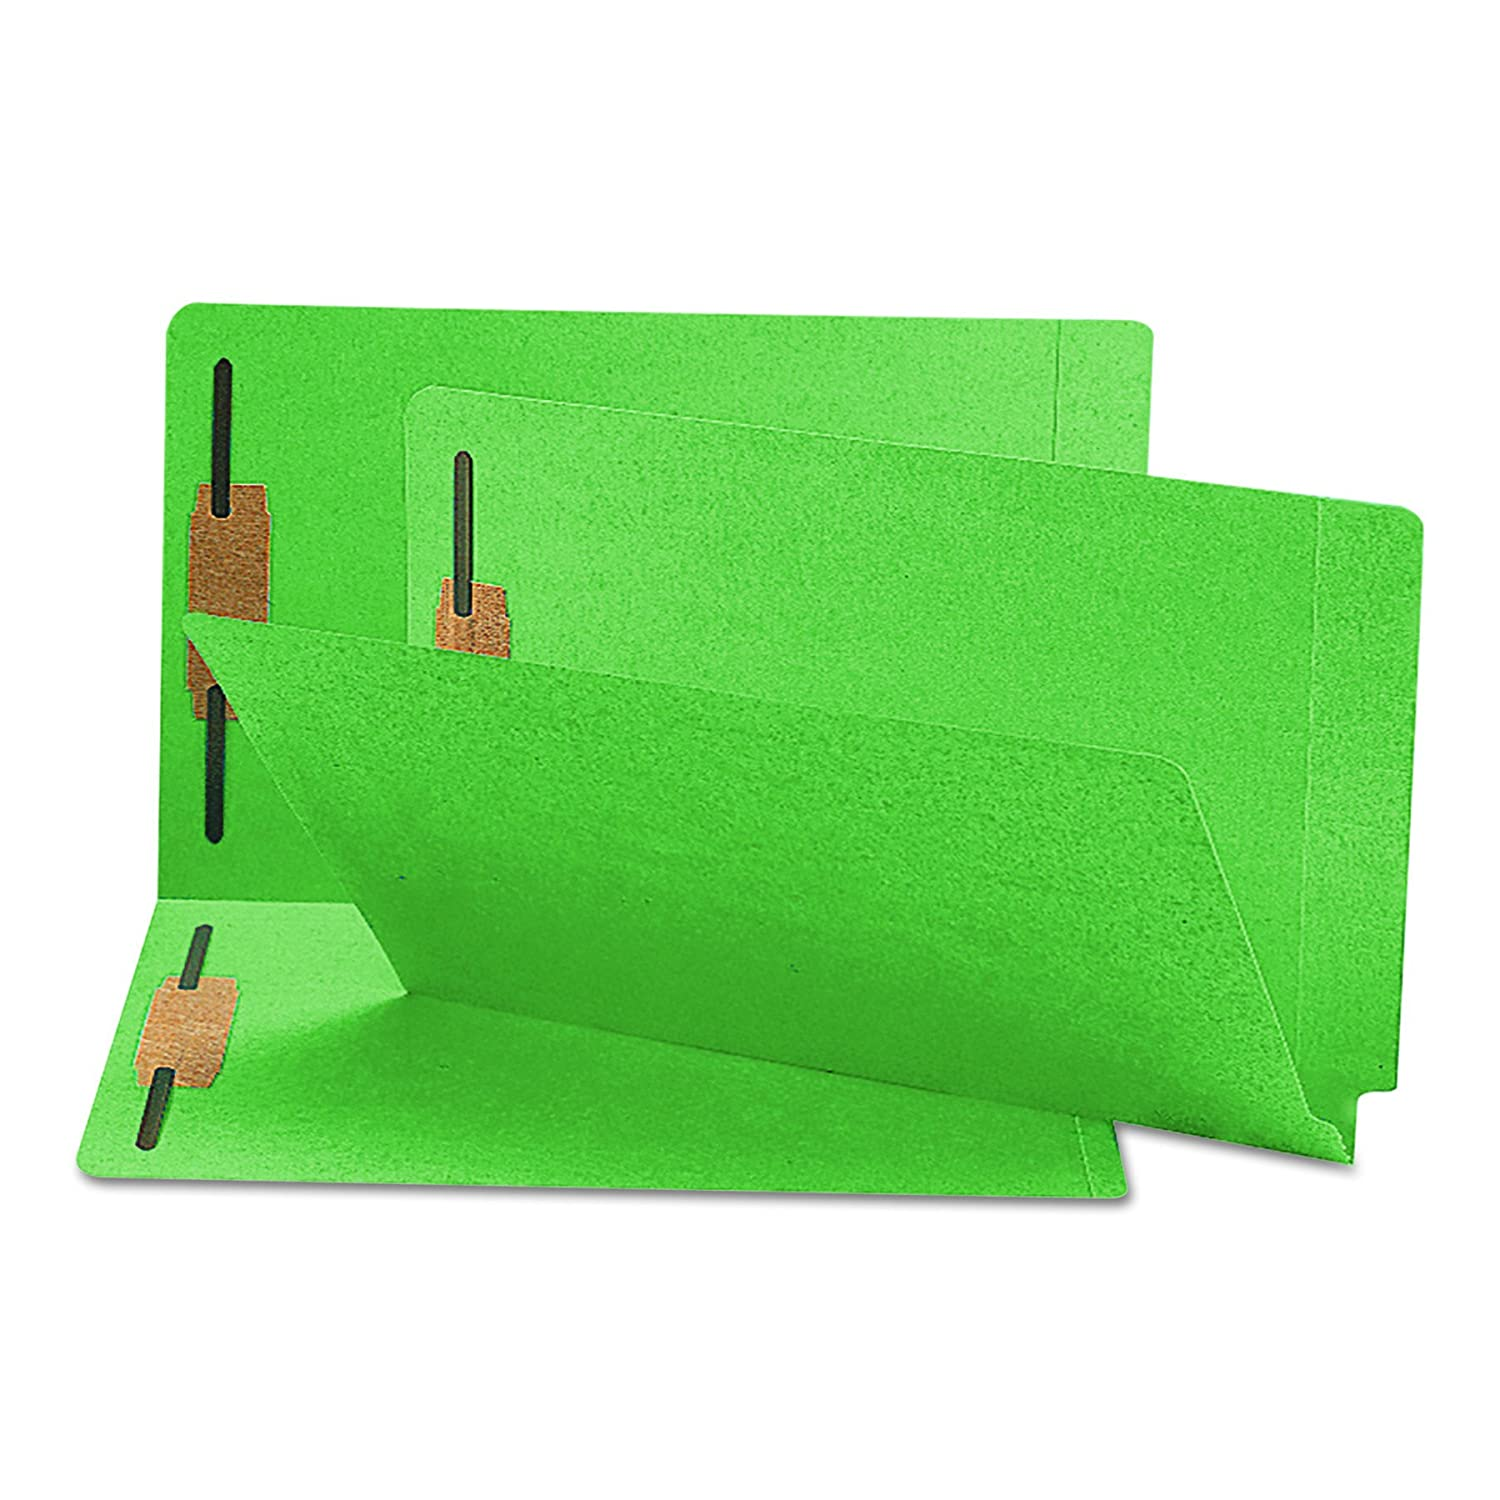 Smead Colored Fastener Folders Shelf-Master Legal Green - Carpeta (38,7 cm, 24,1 cm, Verde, 50 piezas)